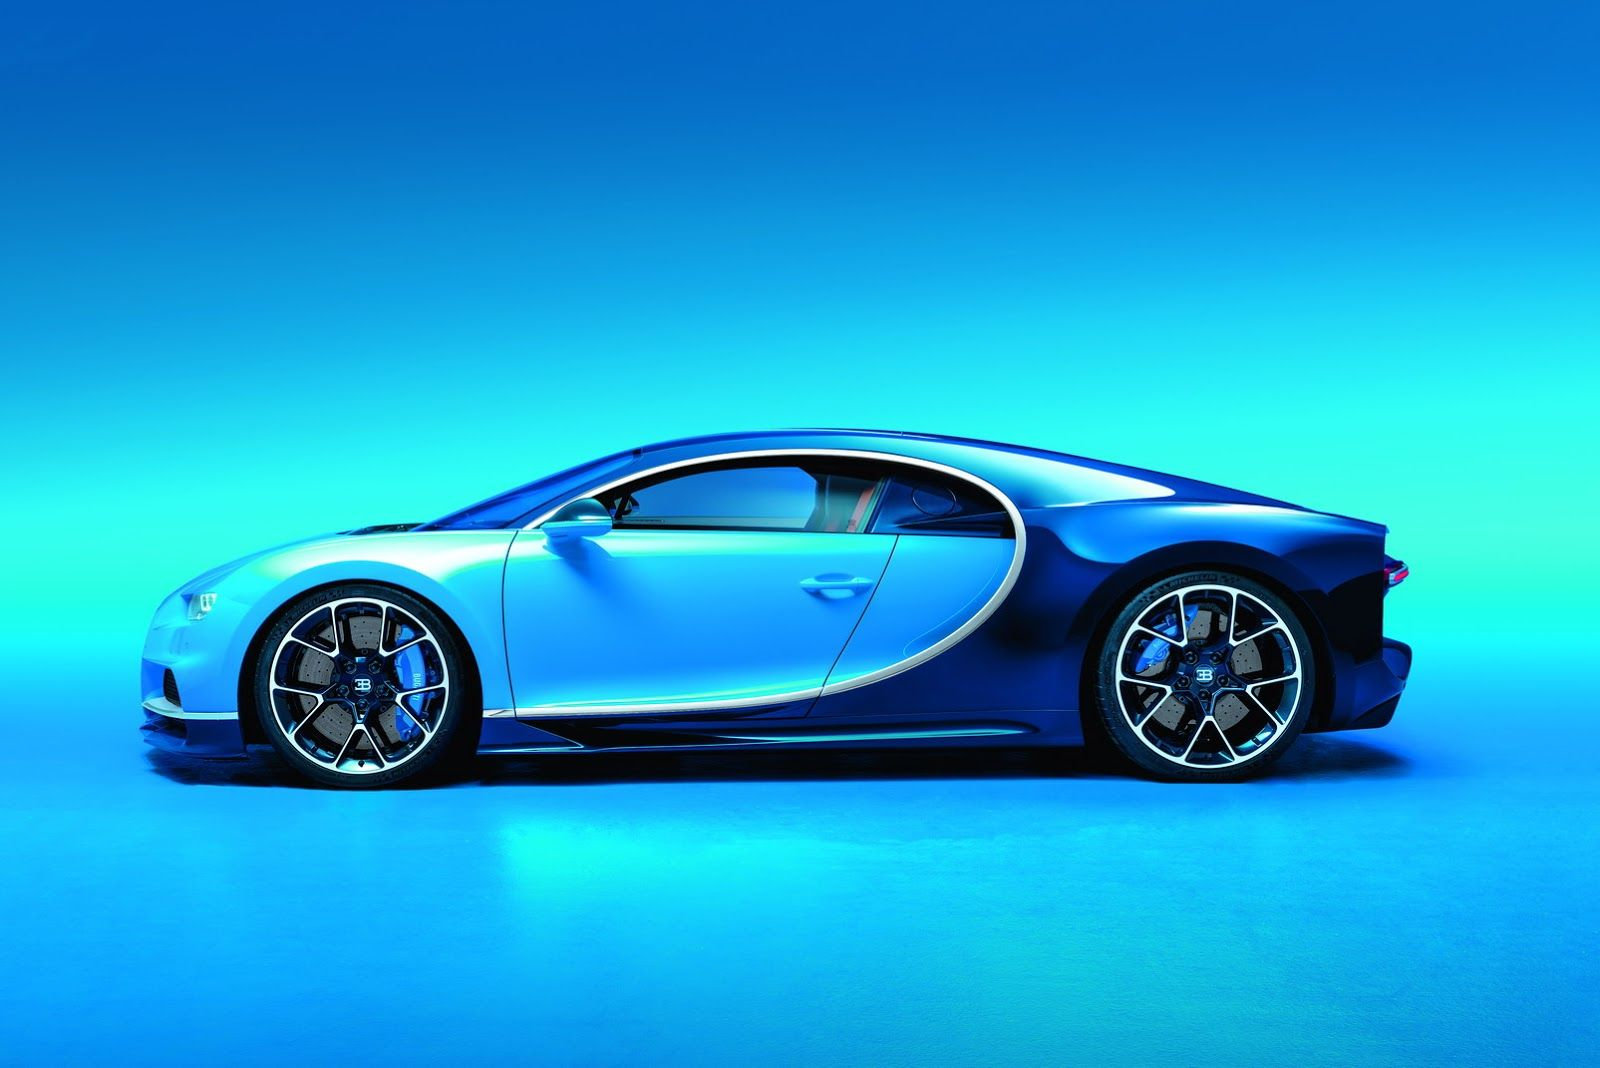 Bugatti Chiron Is Official 1 500 Horsepower 260 Mph 2 6 Million 95 Pics Carscoops Bugatti Chiron Bugatti Sports Car